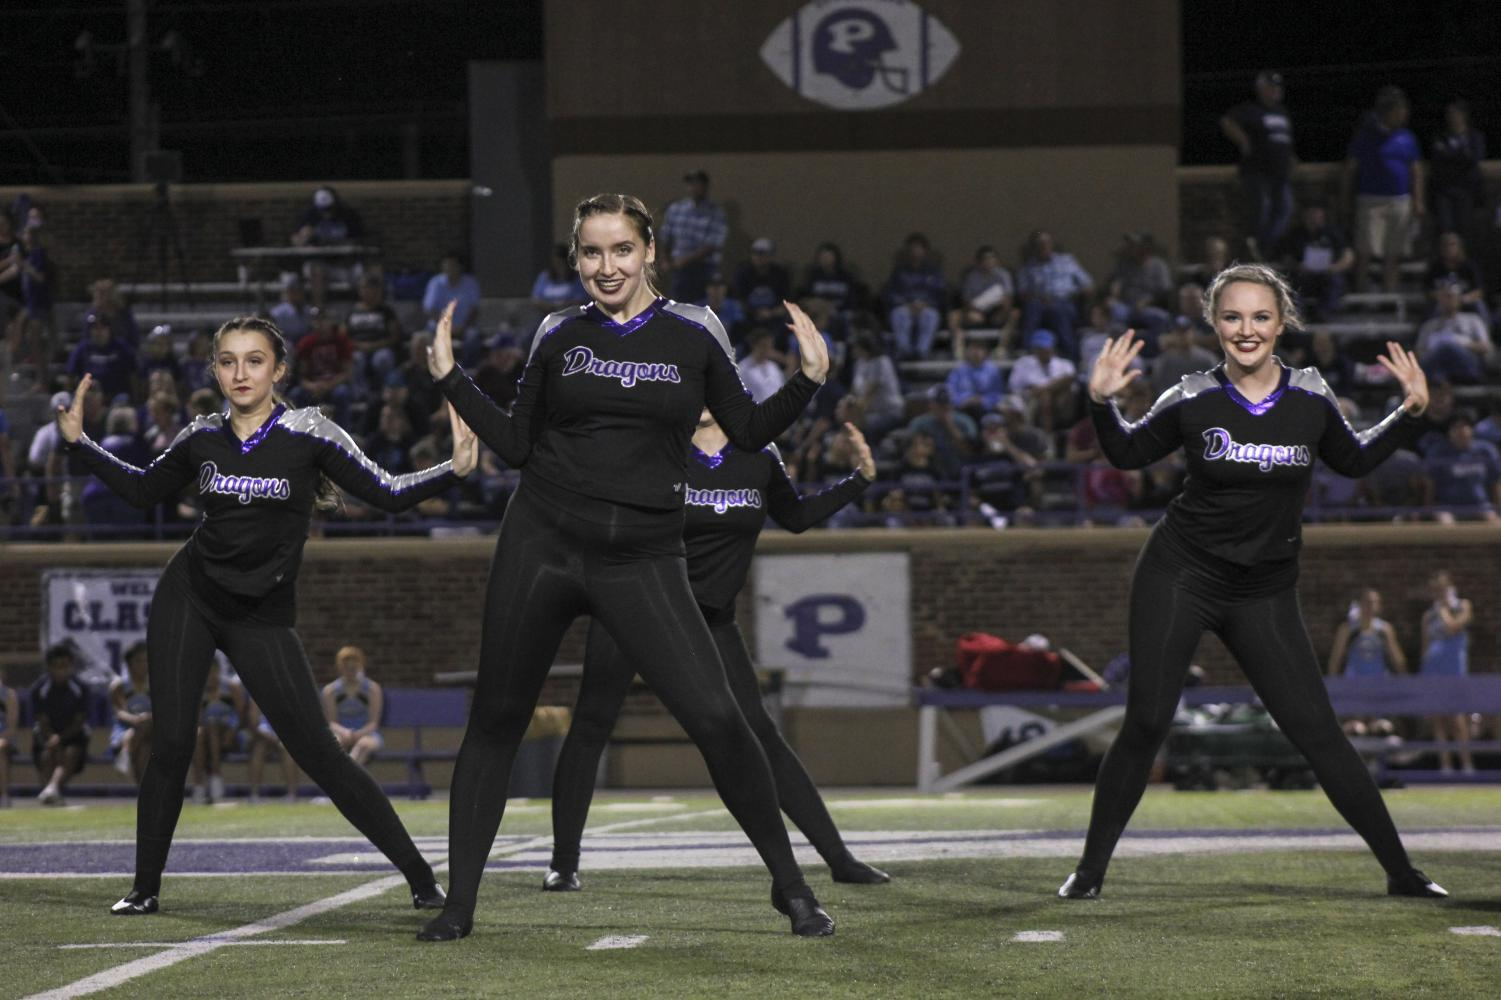 Members of the dance team perform on Sept. 13 during halftime of the varsity football game.